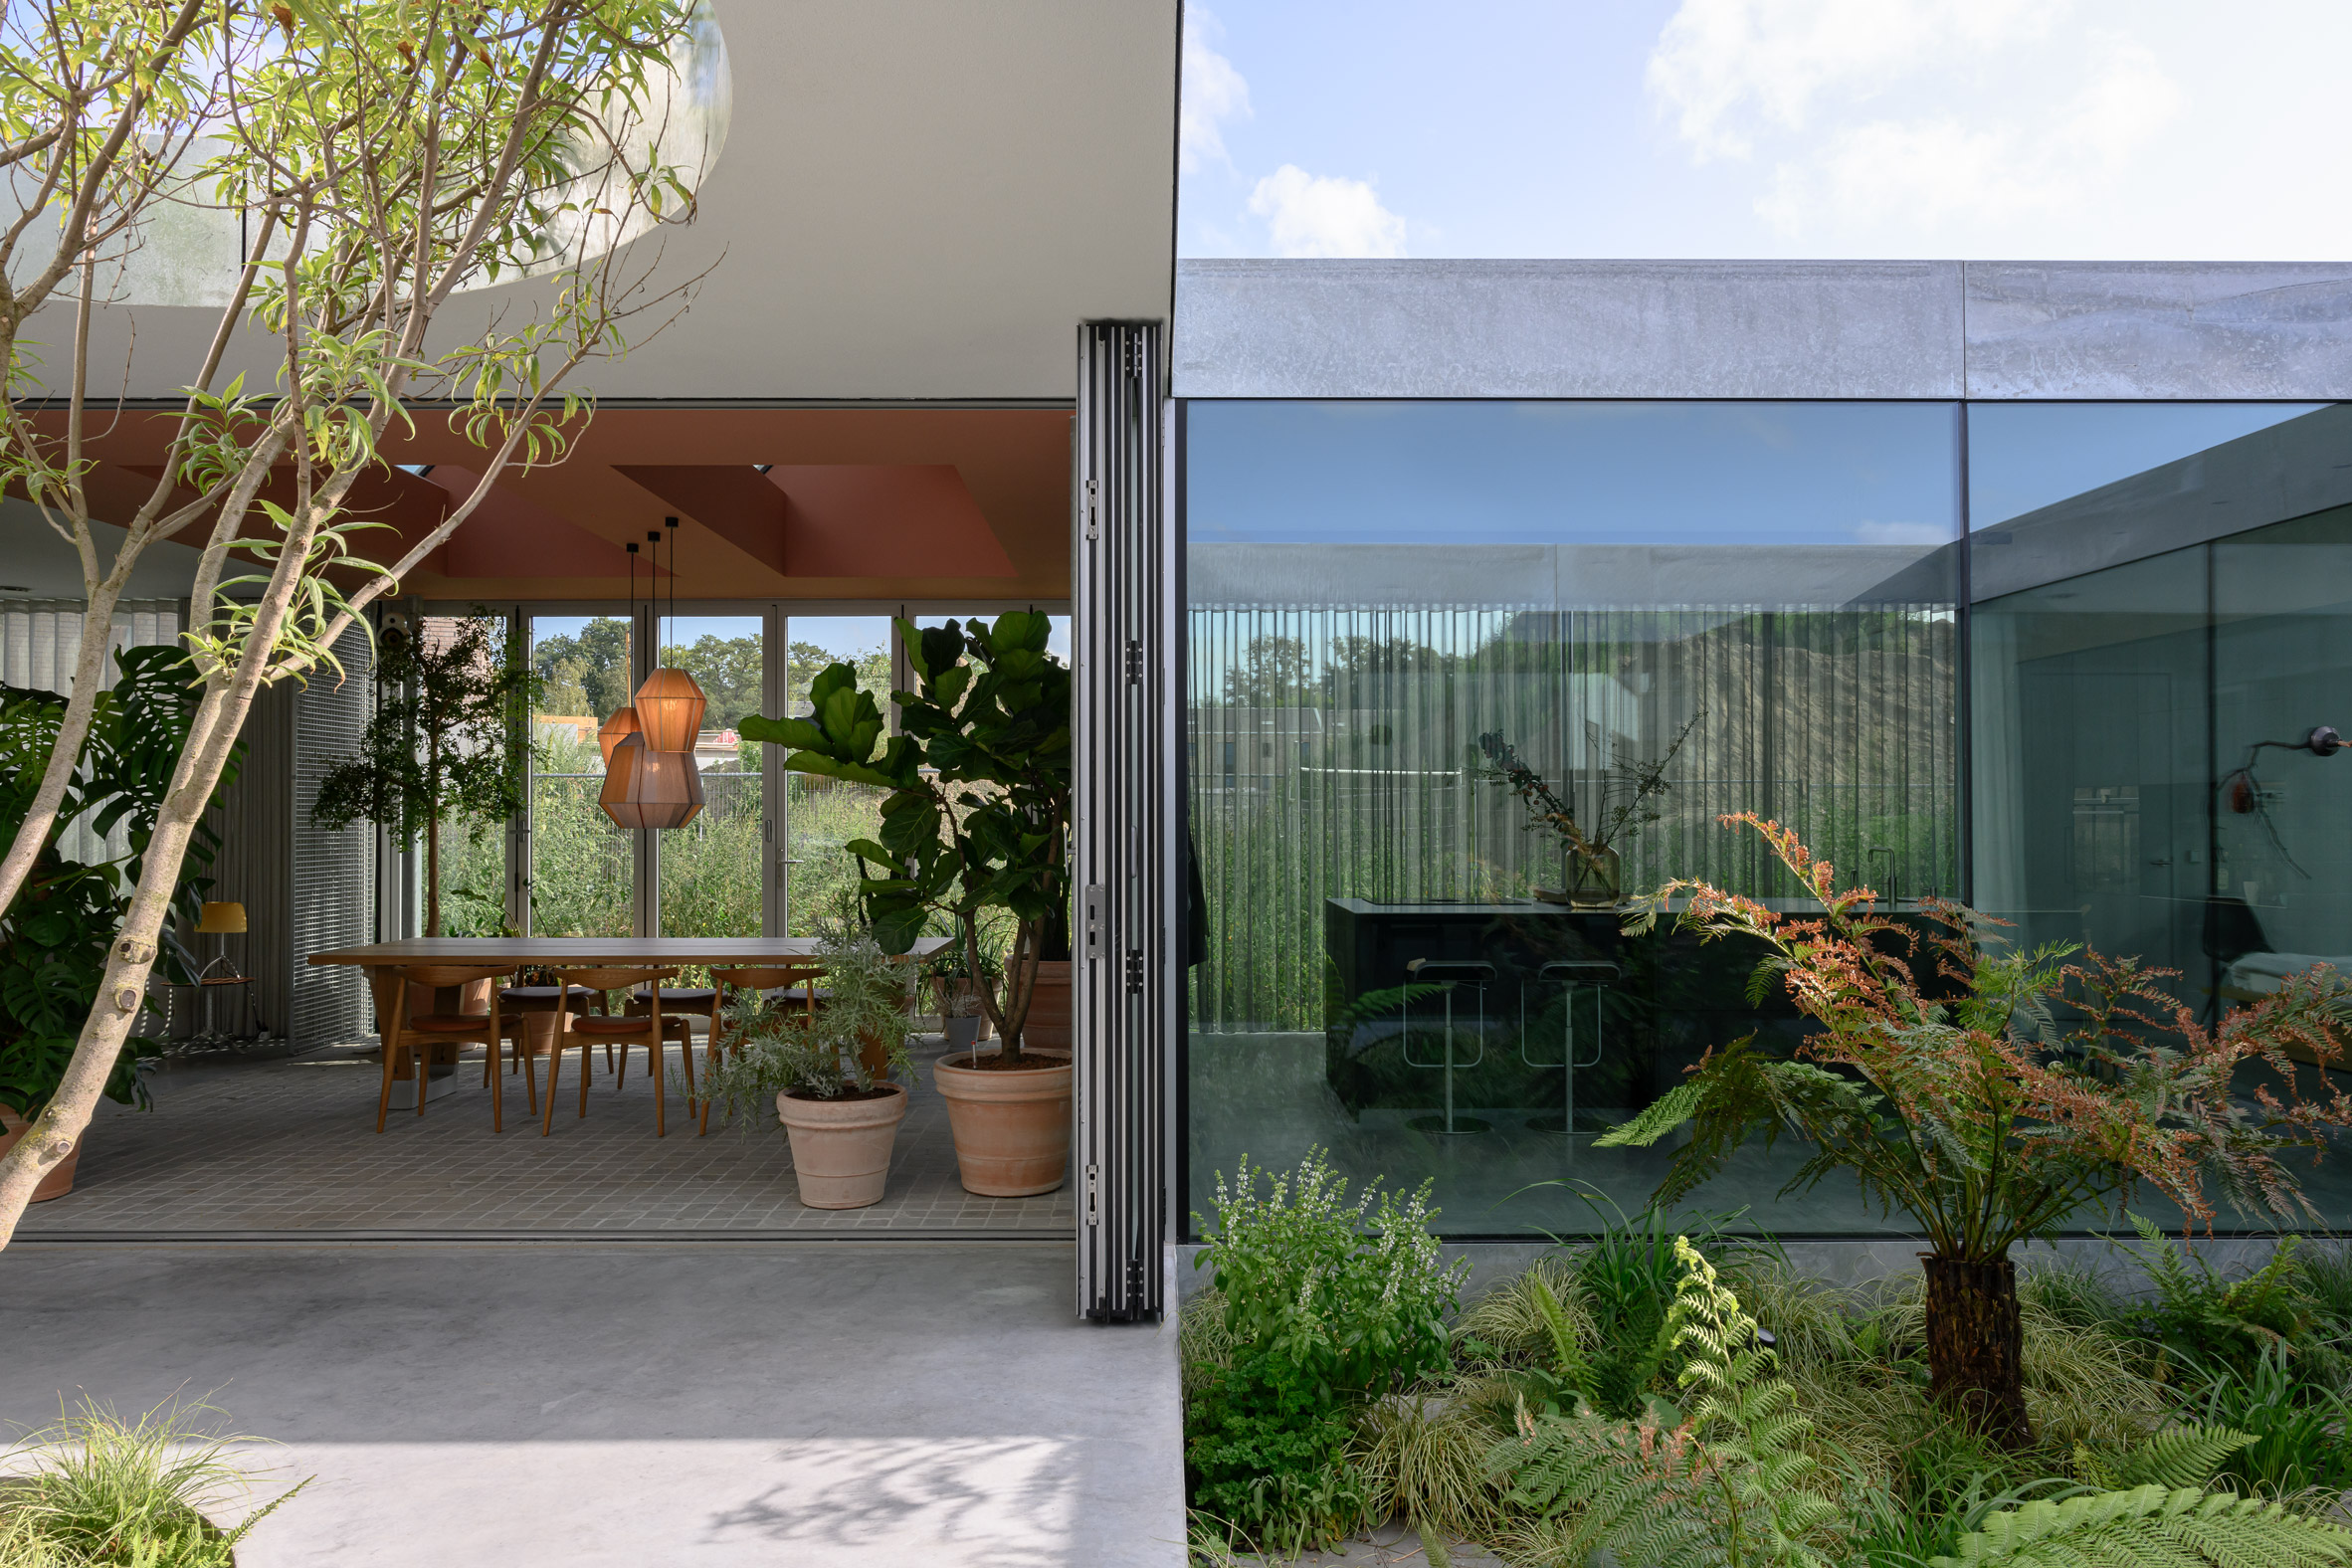 The glass elevation and courtyards of a Dutch family house